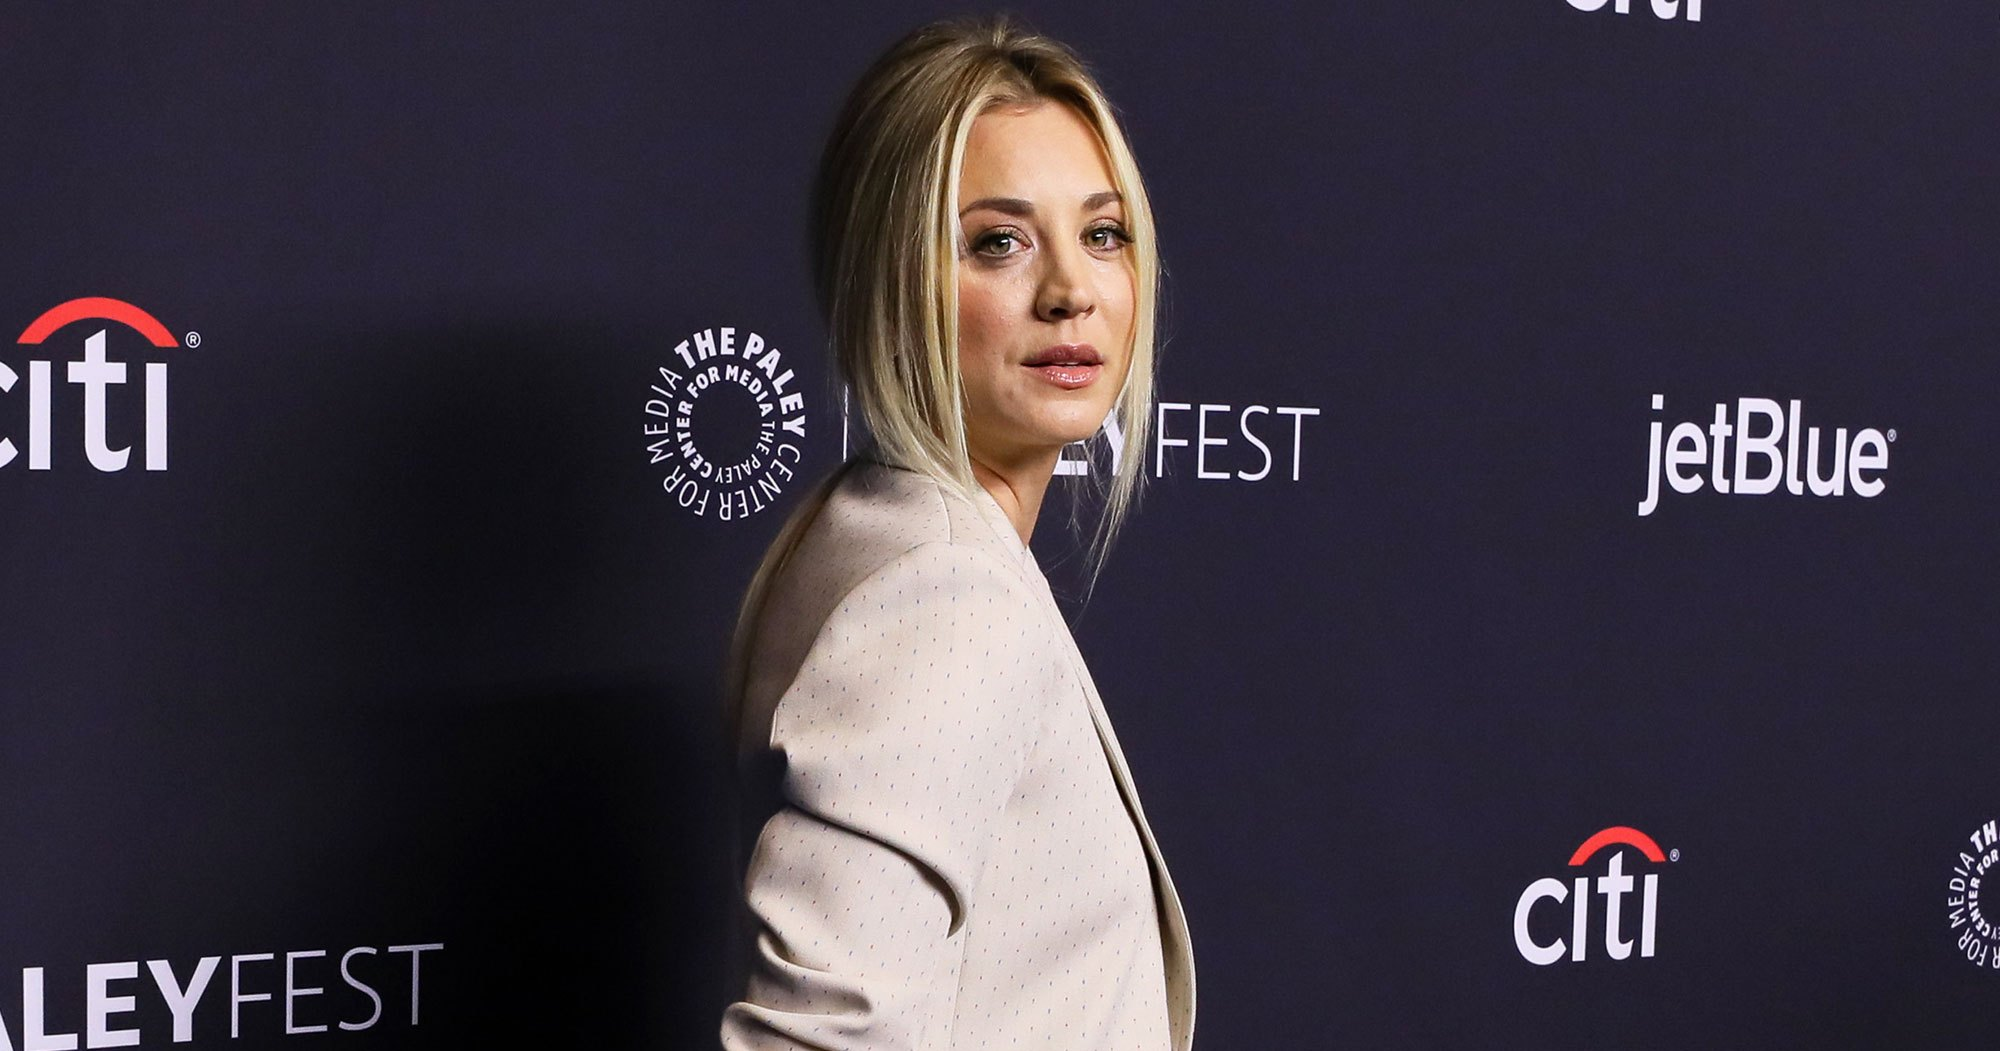 Kaley Cuoco: My Comments About Karl Leaving Me Were 'Taken Out of Context'